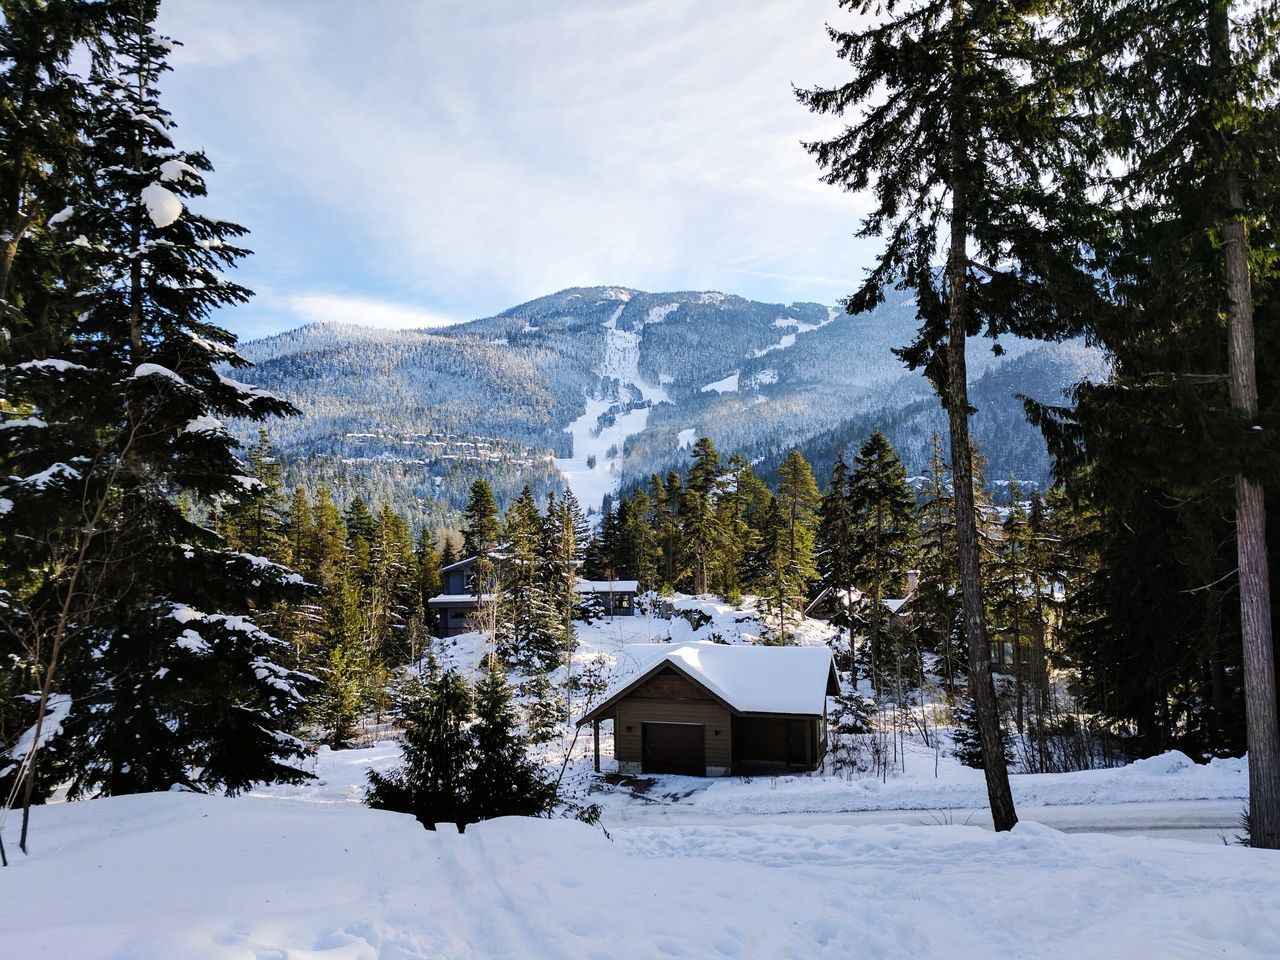 Cabin with a a ski resort mountain Tree Snow Tranquil Scene Nature Cold Temperature No People Beauty In Nature Scenics Sky Winter Landscape Outdoors Day Mountain Ski Resort Cabin Chalet